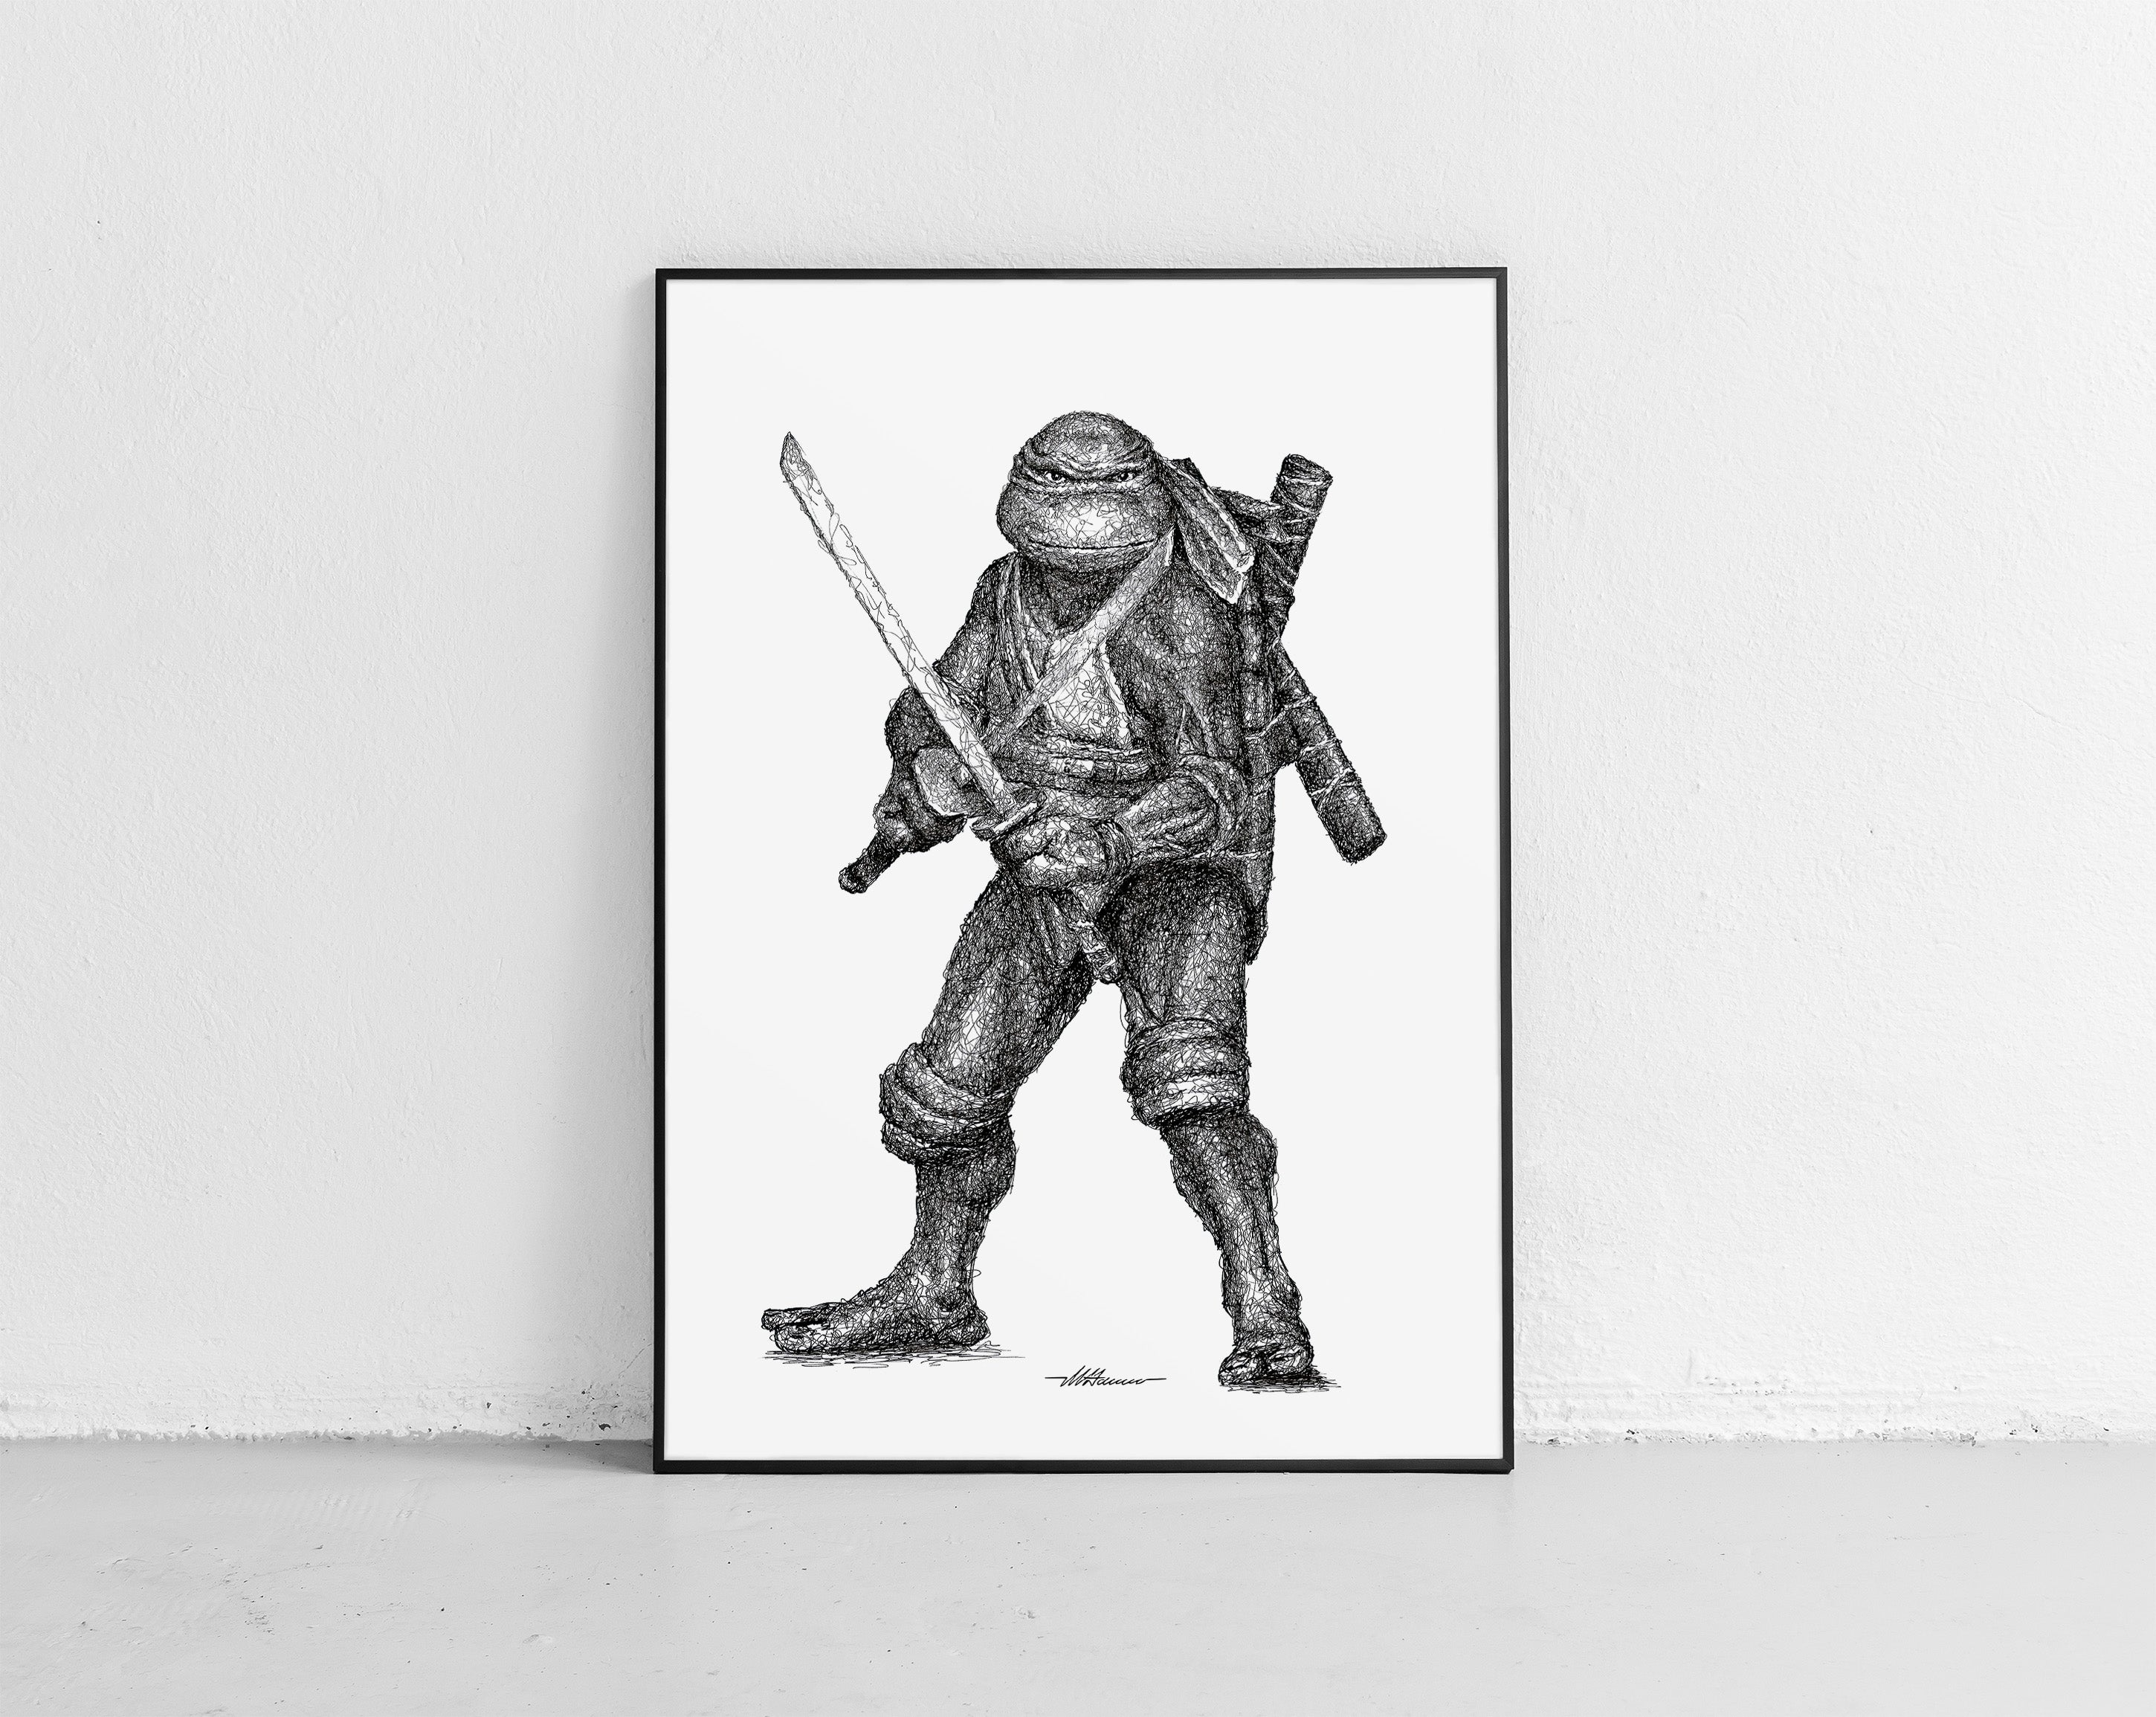 Scribbled Leonardo (Teenage Mutant Ninja Turtles)